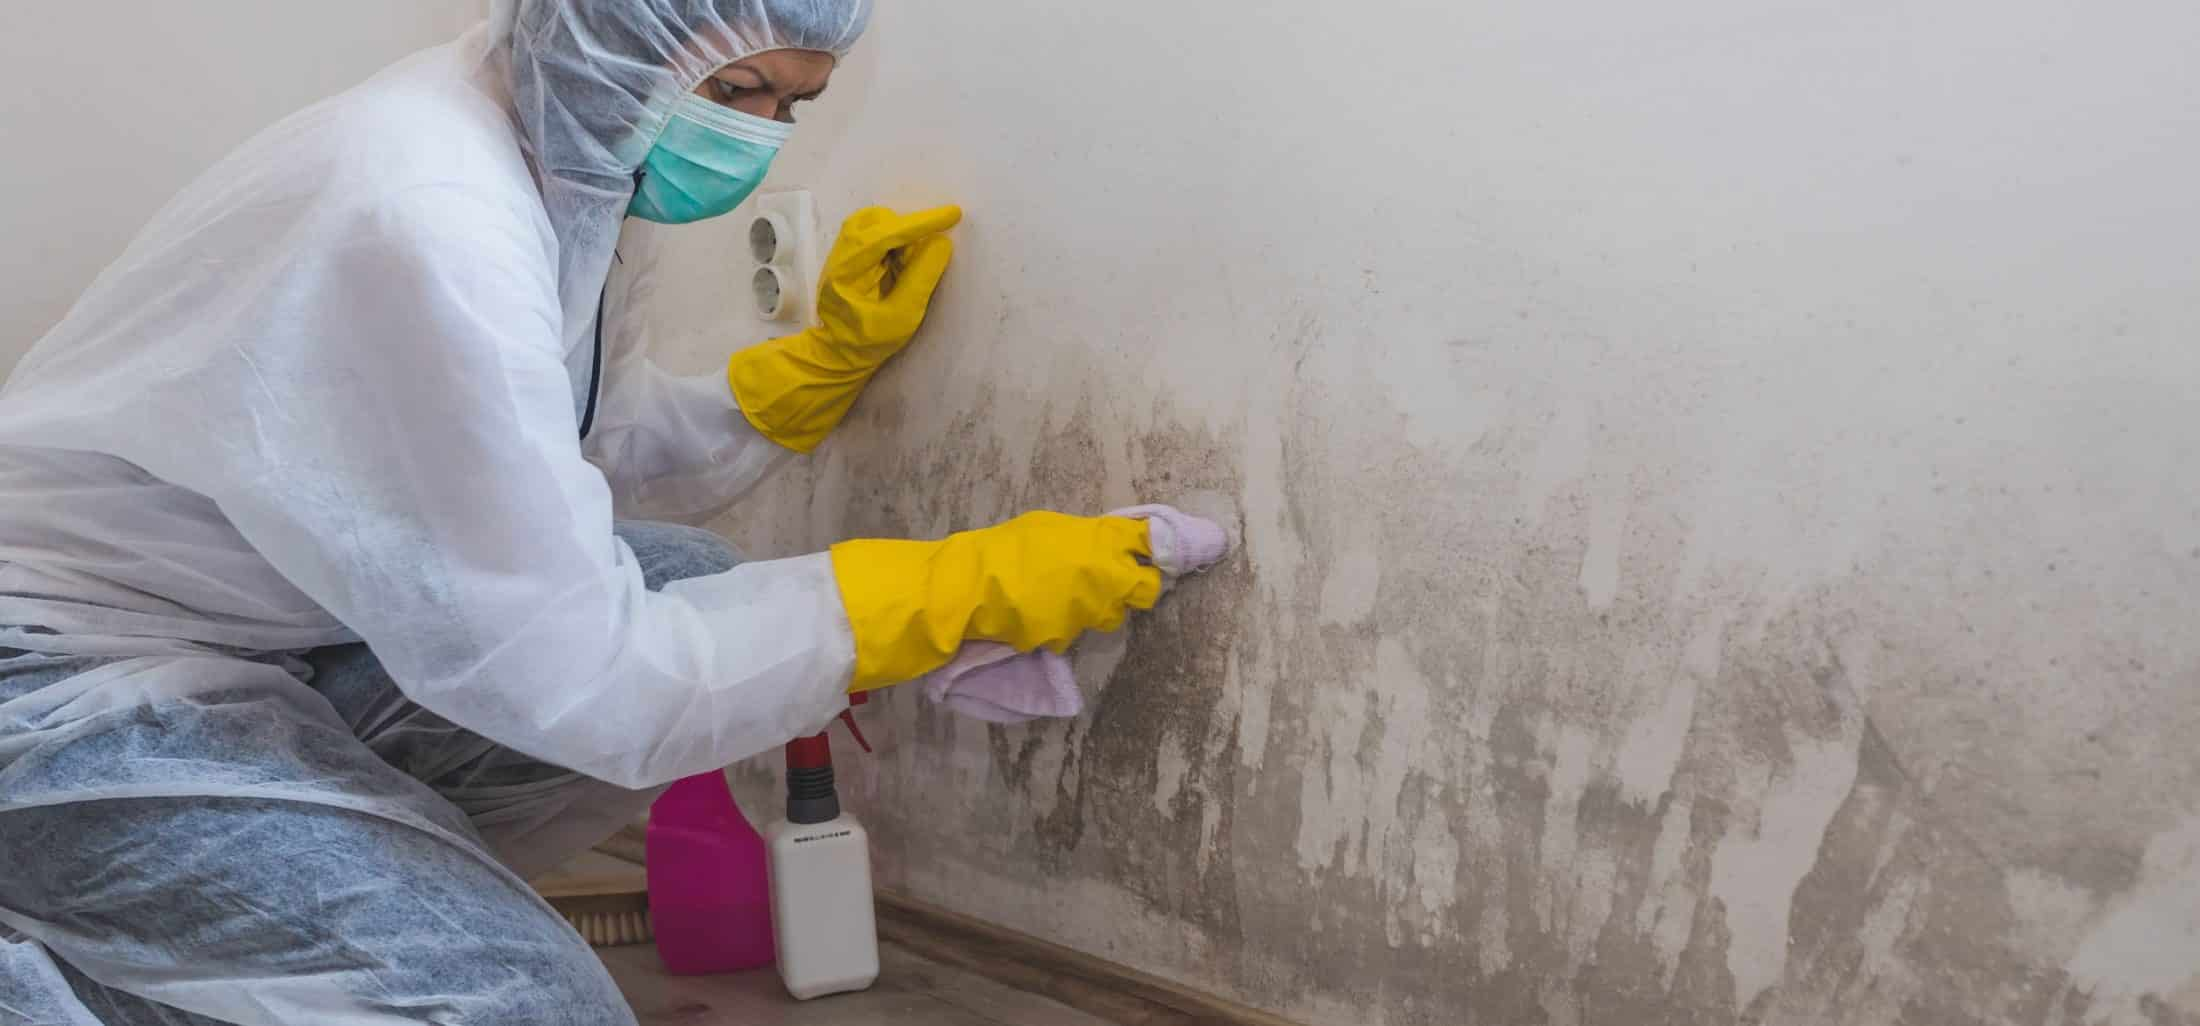 Worker removing mold from a wall